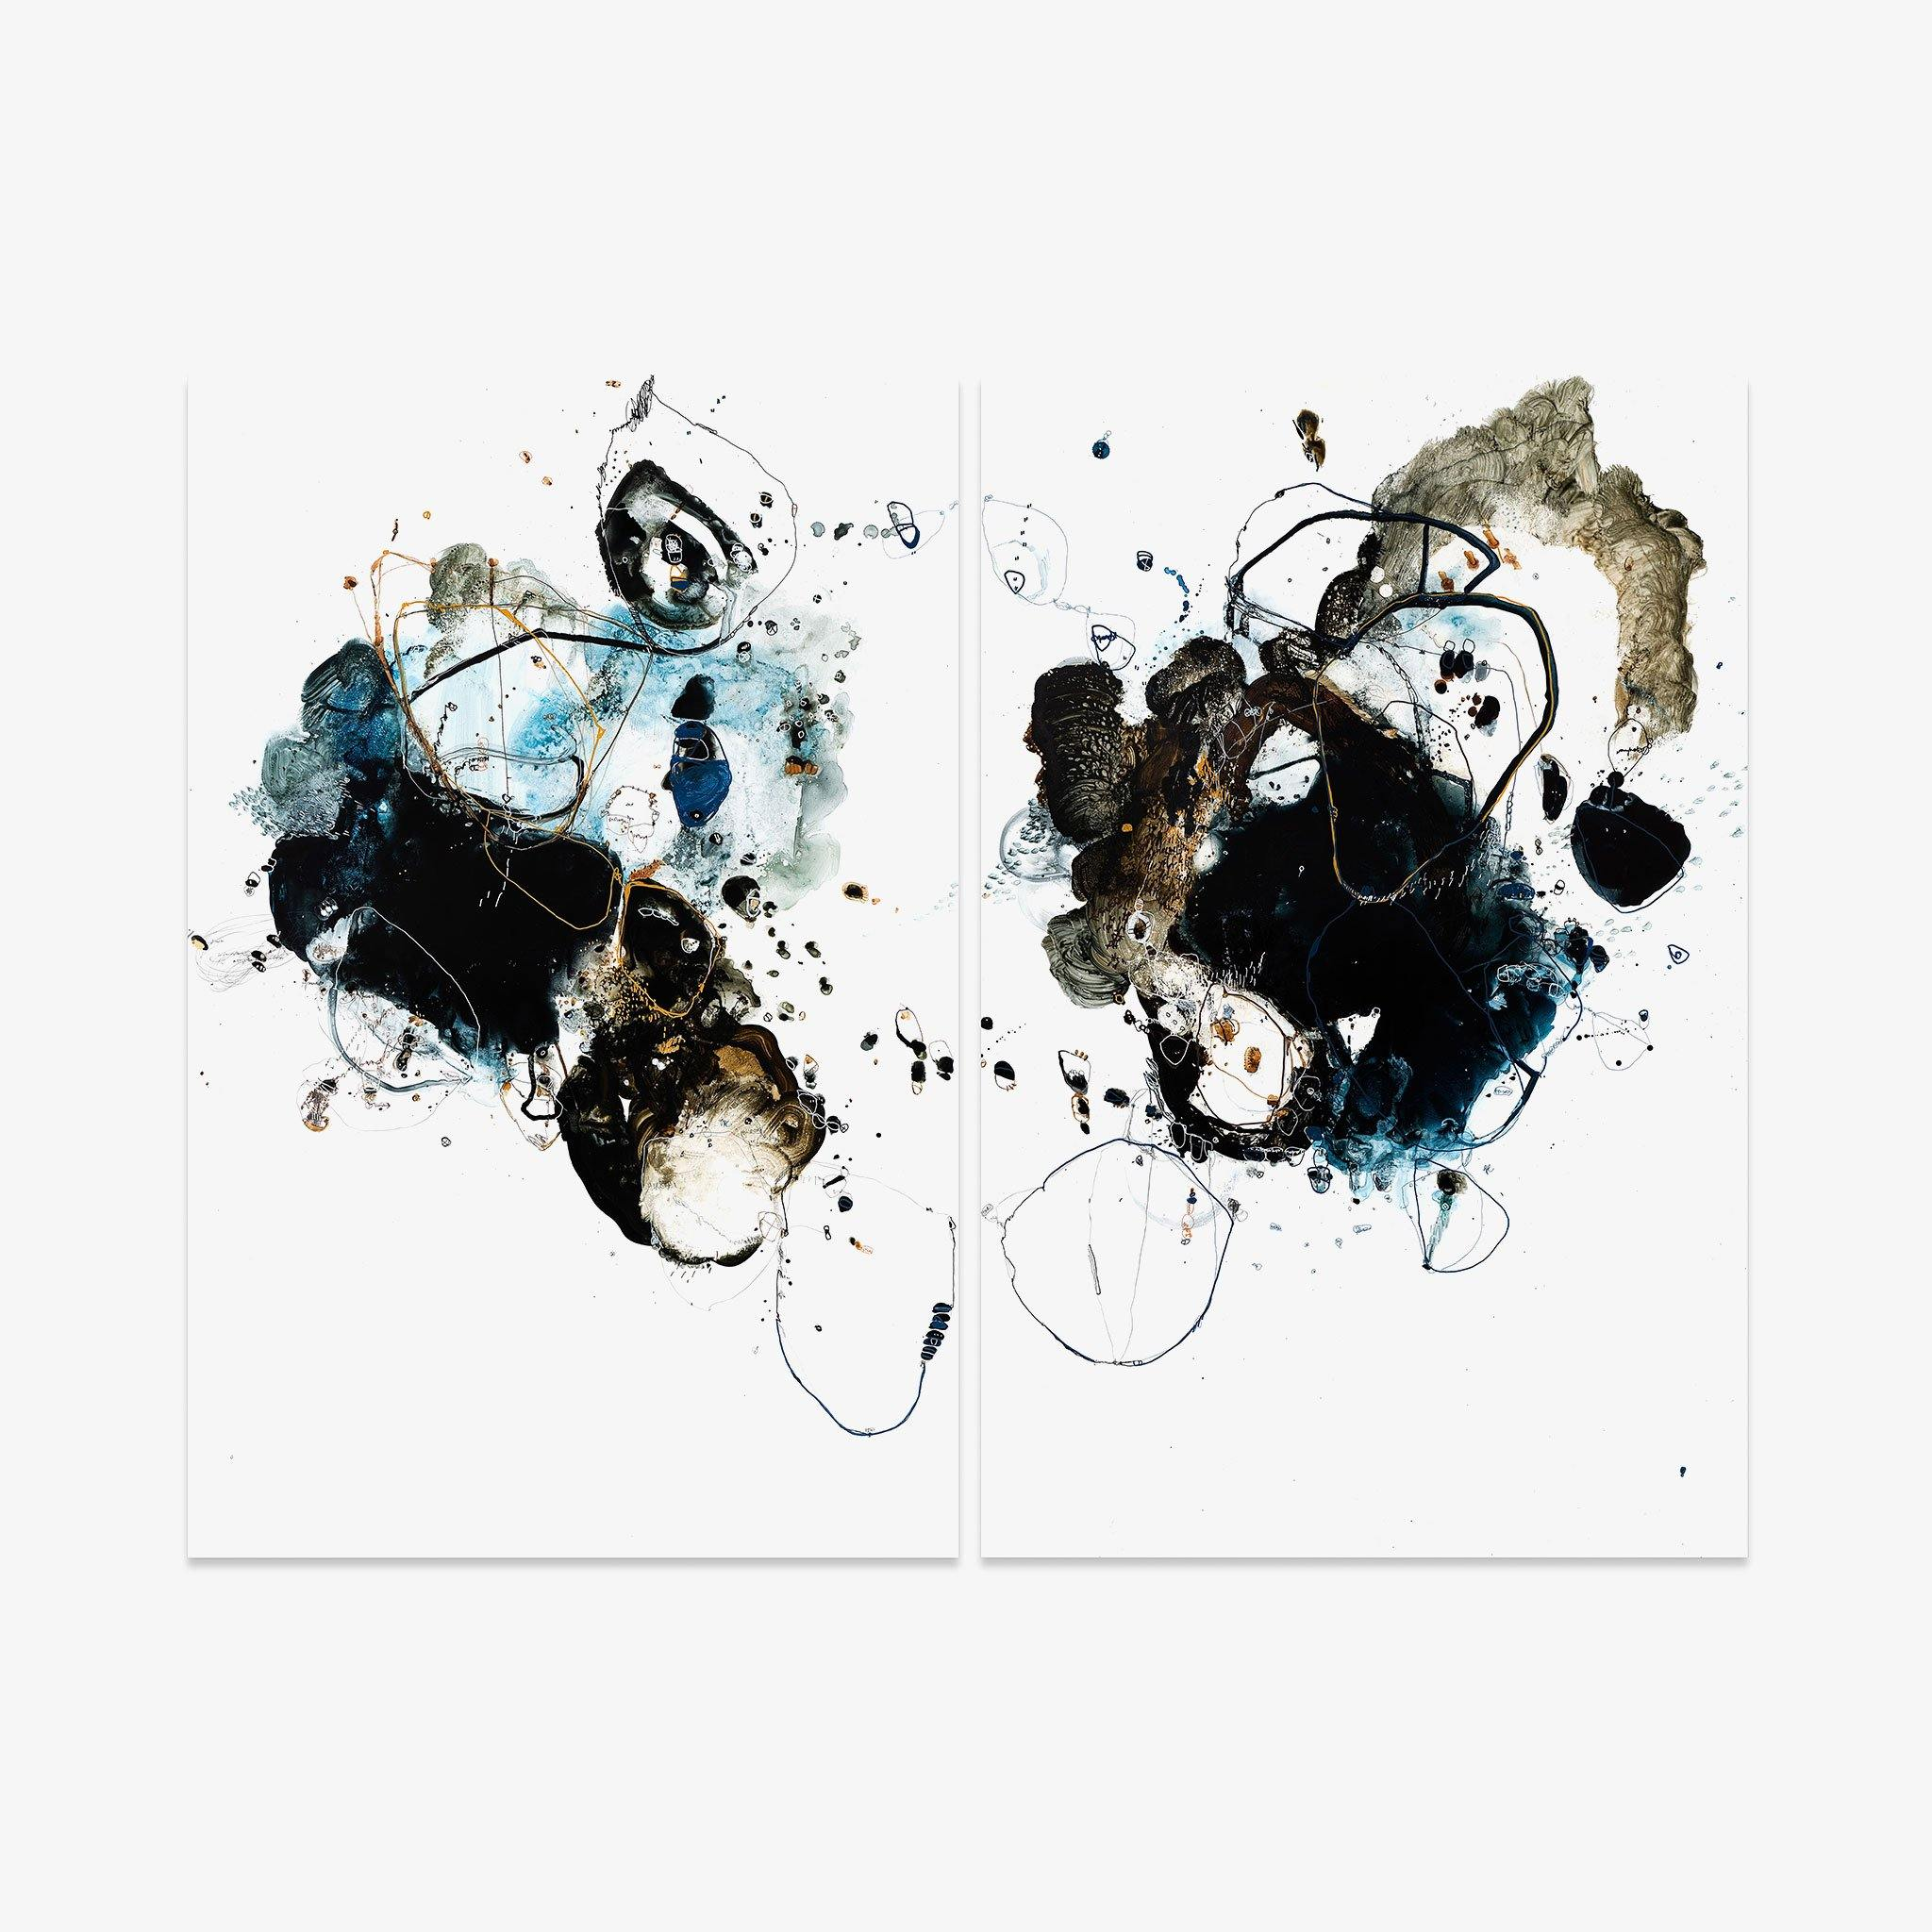 Tidal 9183 (Diptych), Original Work on Paper  by  Tidal 9183 (Diptych) Tappan